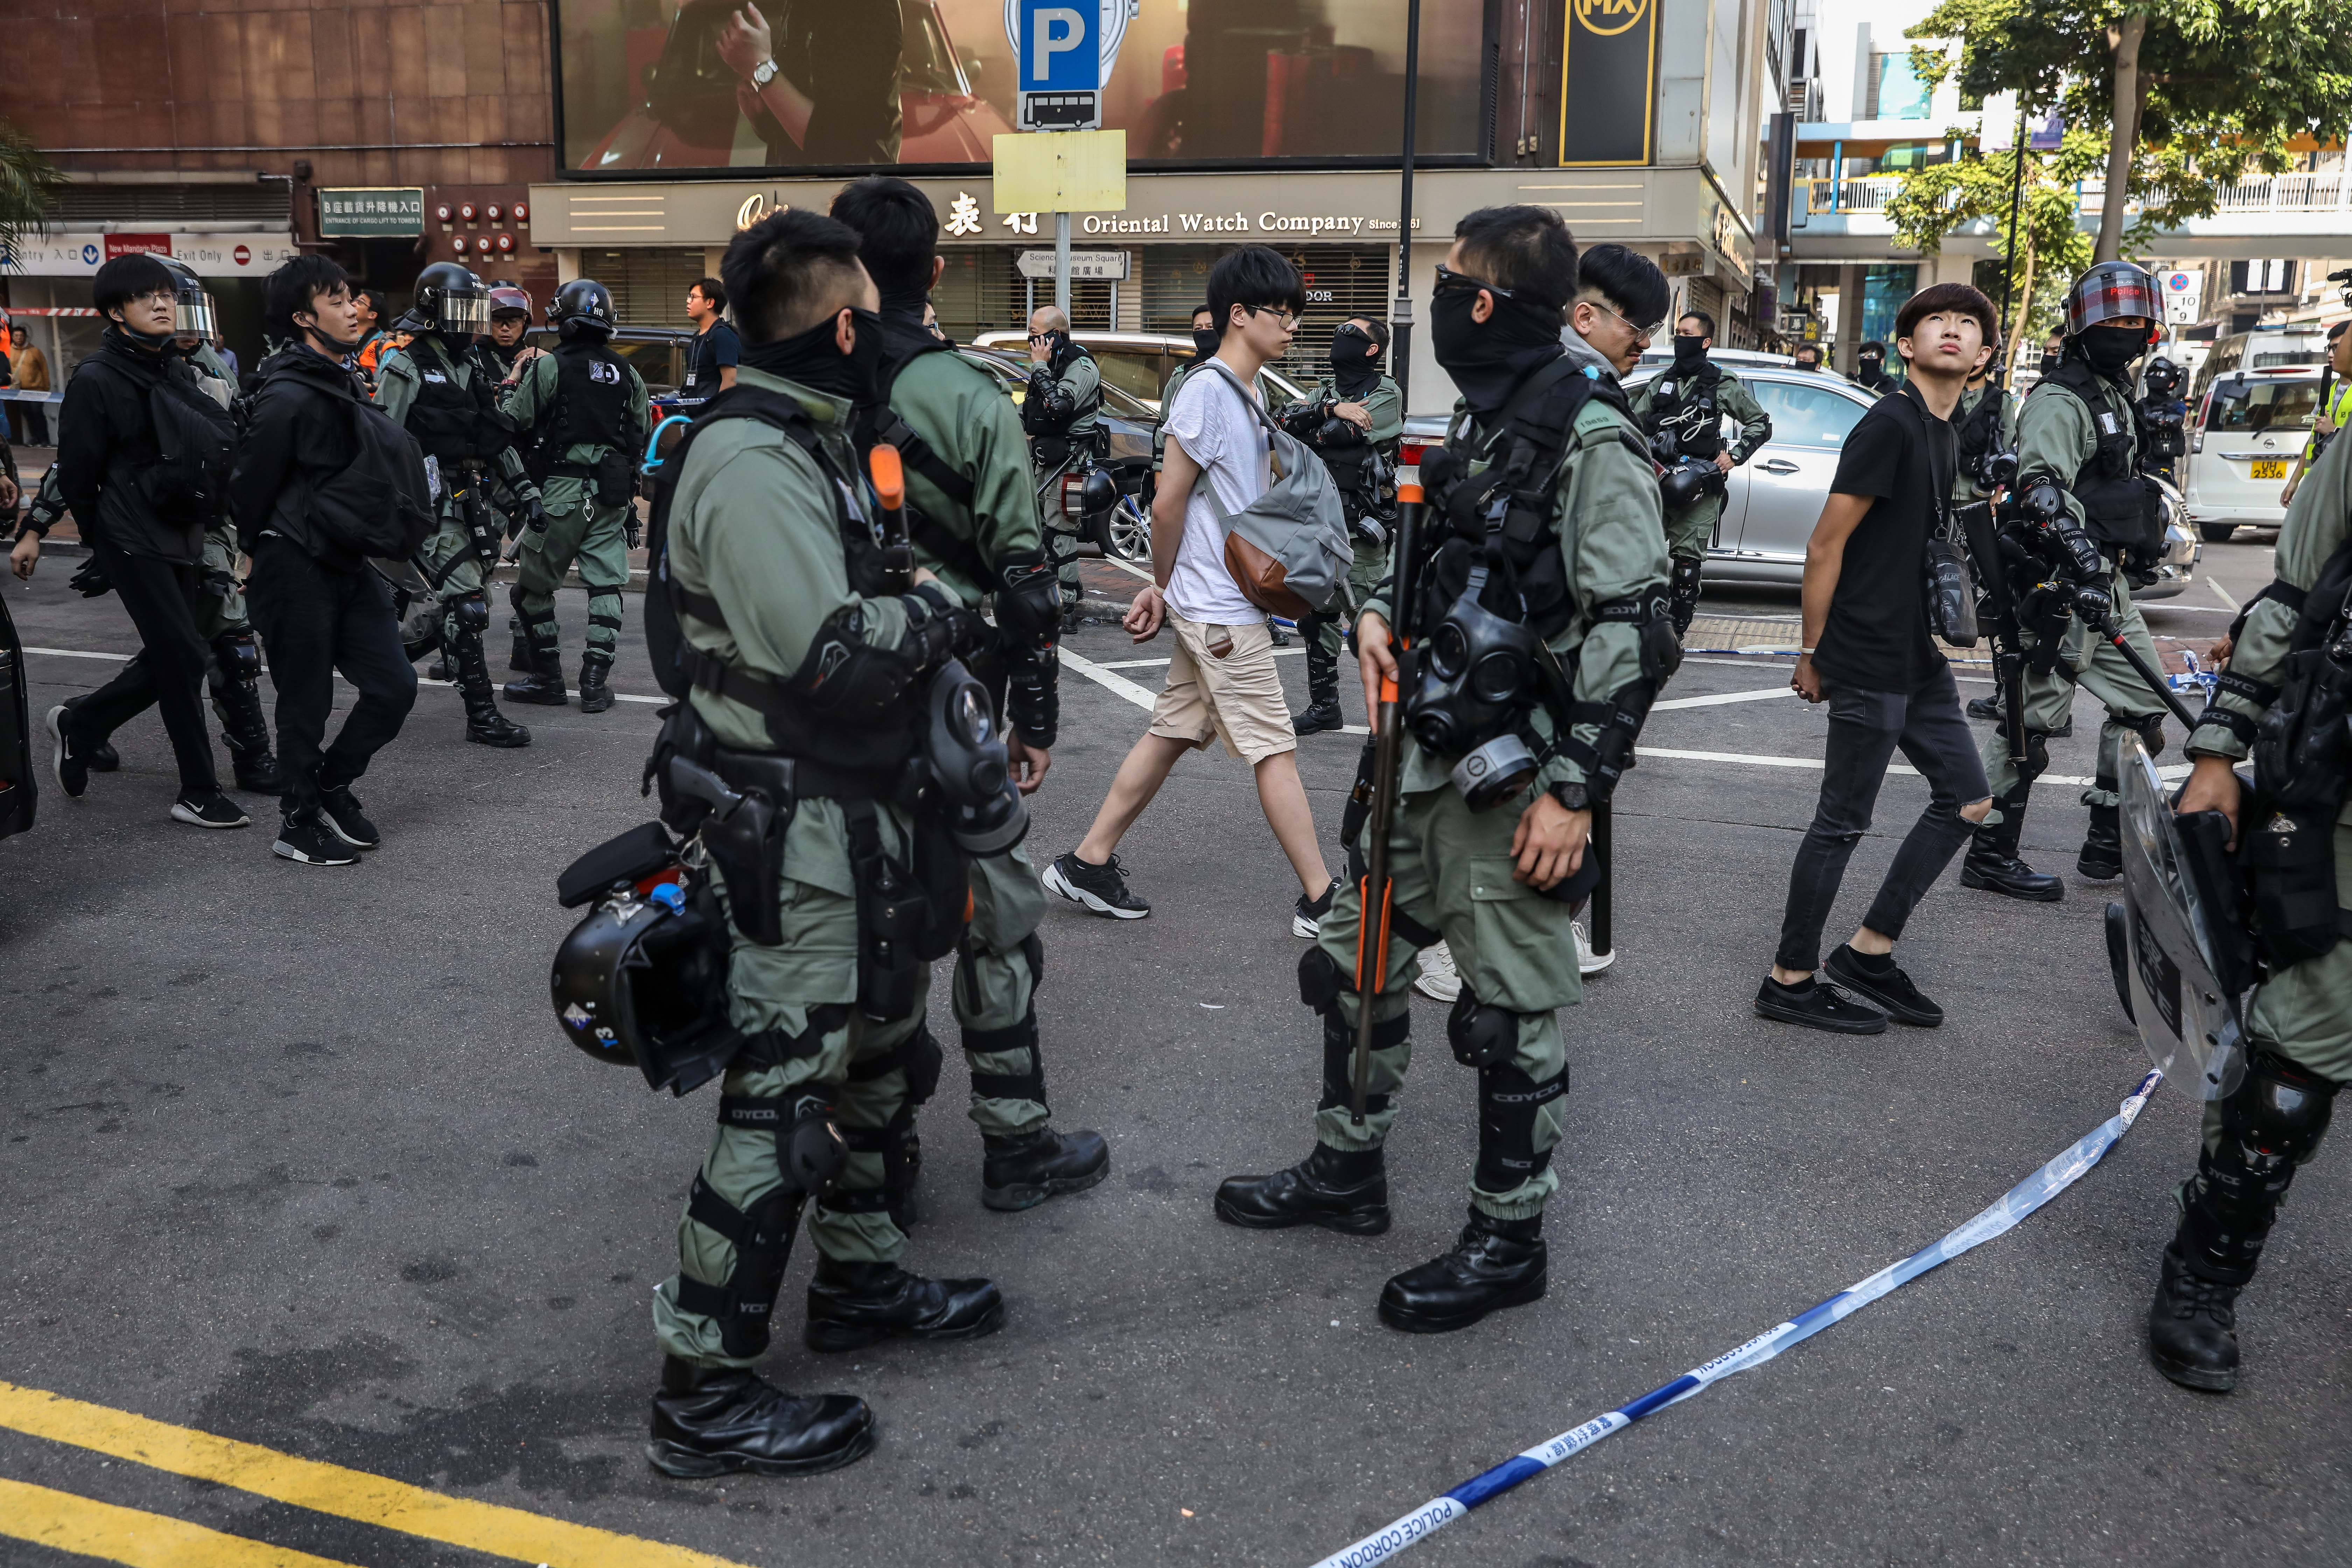 People are detained by police near the Hong Kong Polytechnic University in Hung Hom district of Hong Kong on November 18.